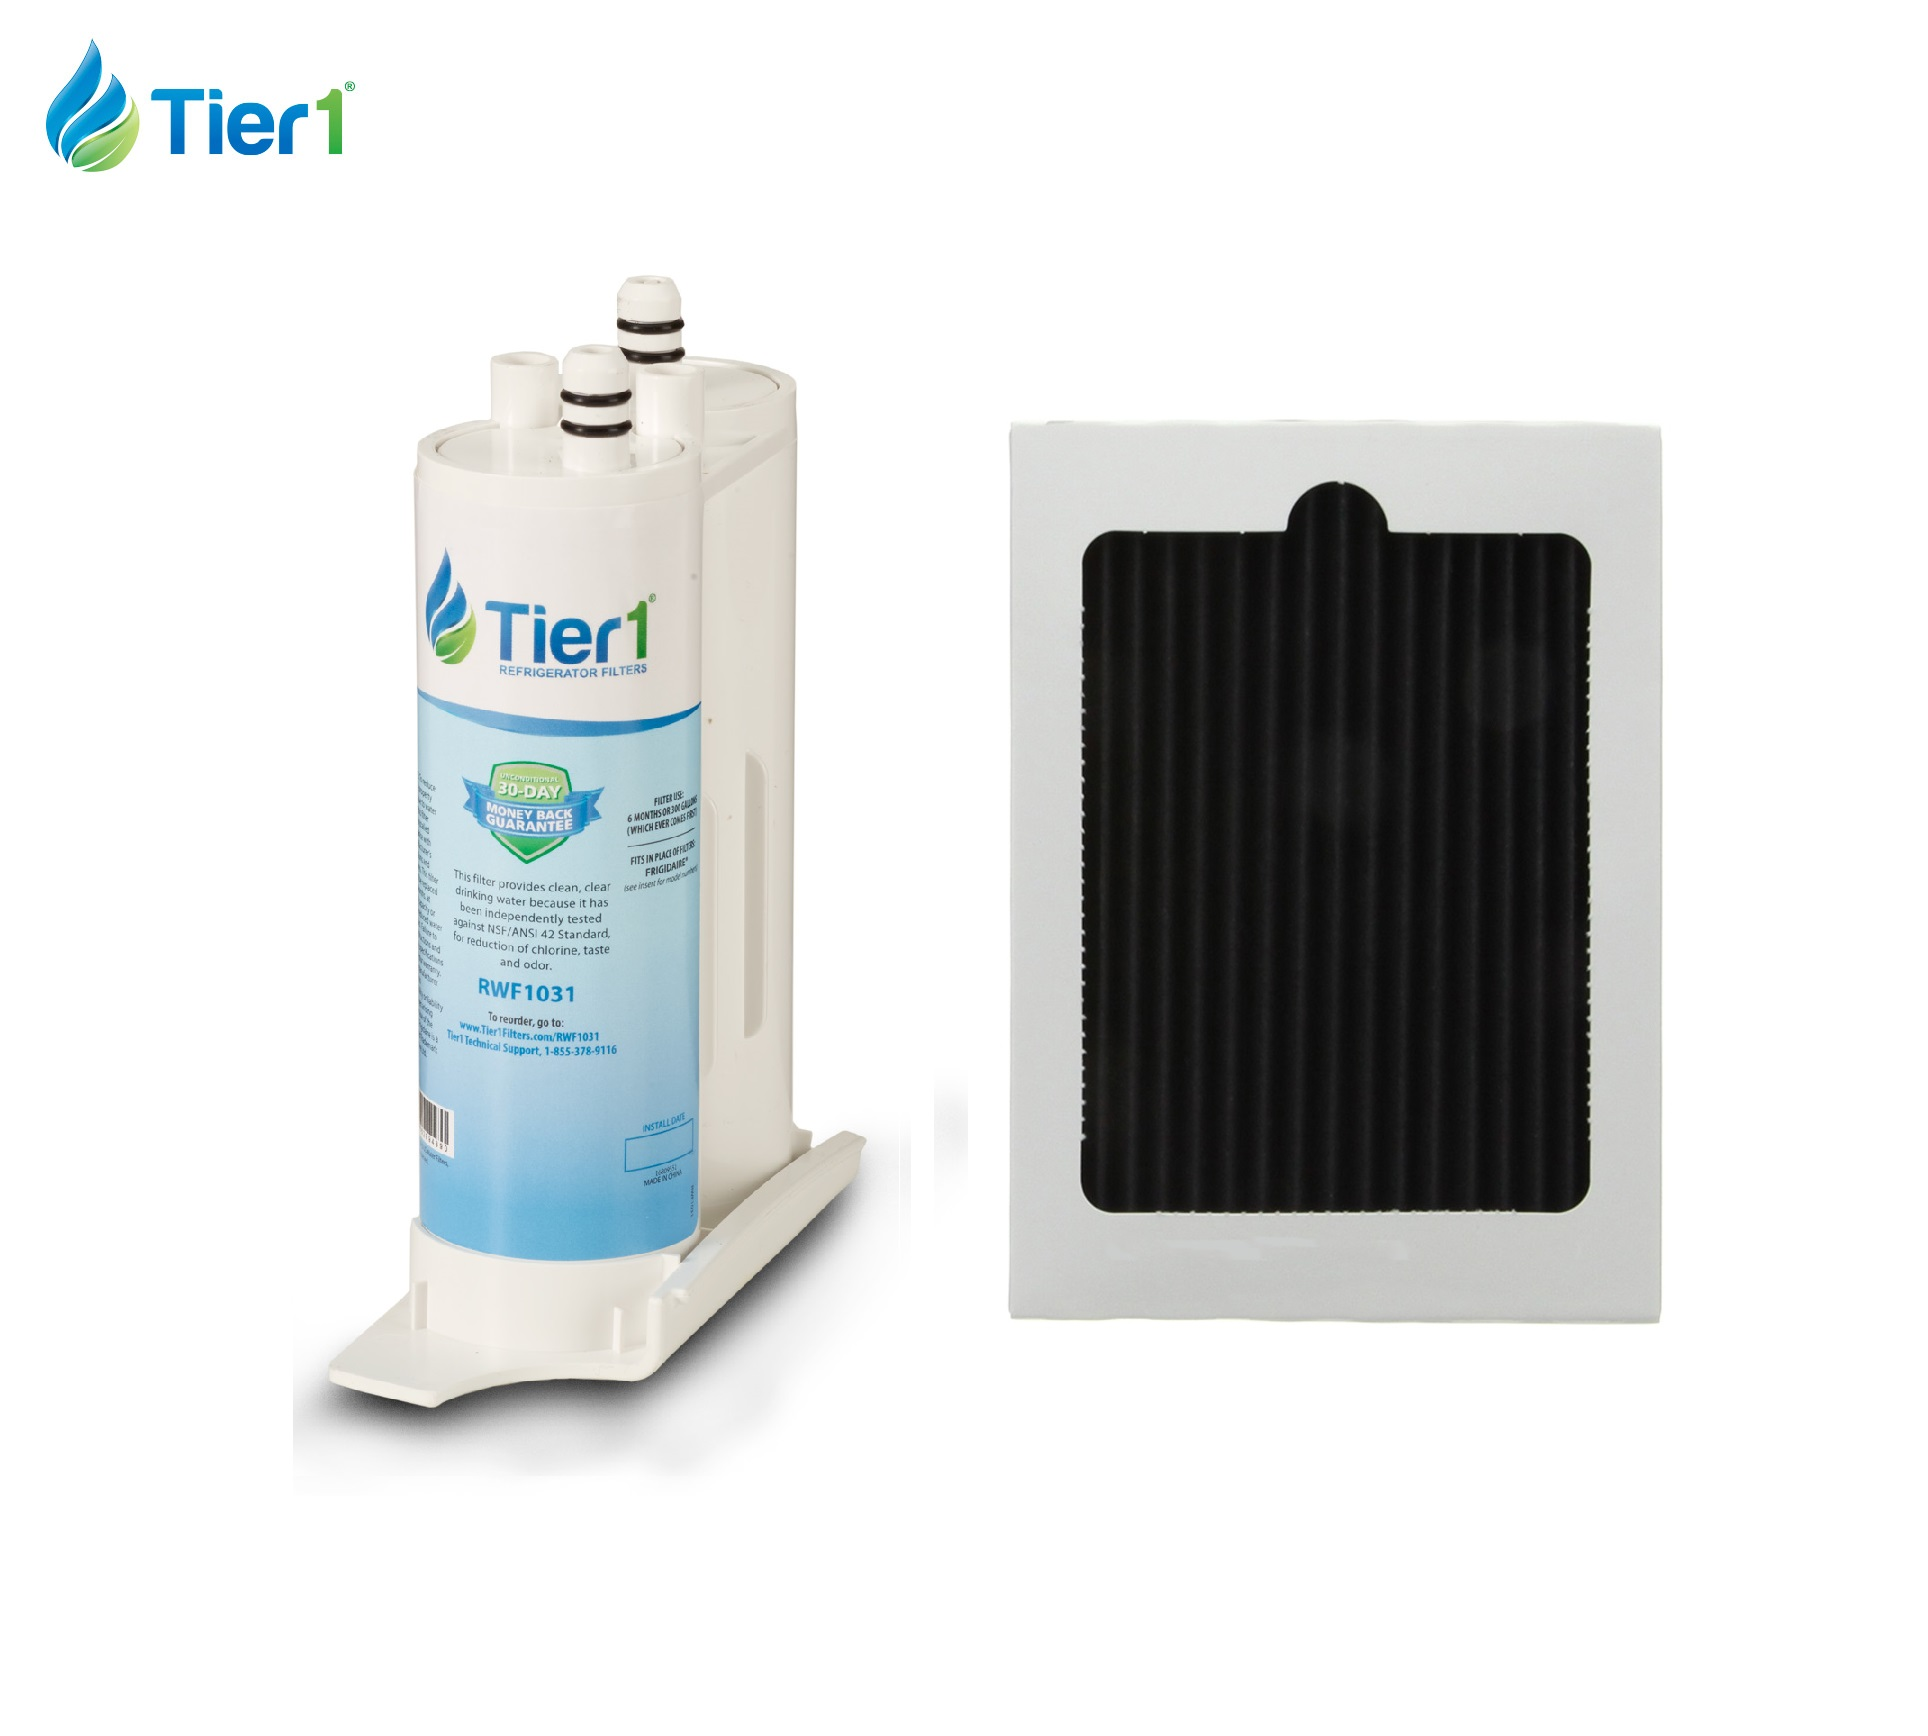 Tier1 Frigidaire WF2CB and Frigidaire PAULTRA Comparable Refrigerator Water Filter and Air Filter Combo TIER1_RWF1031_COMBO